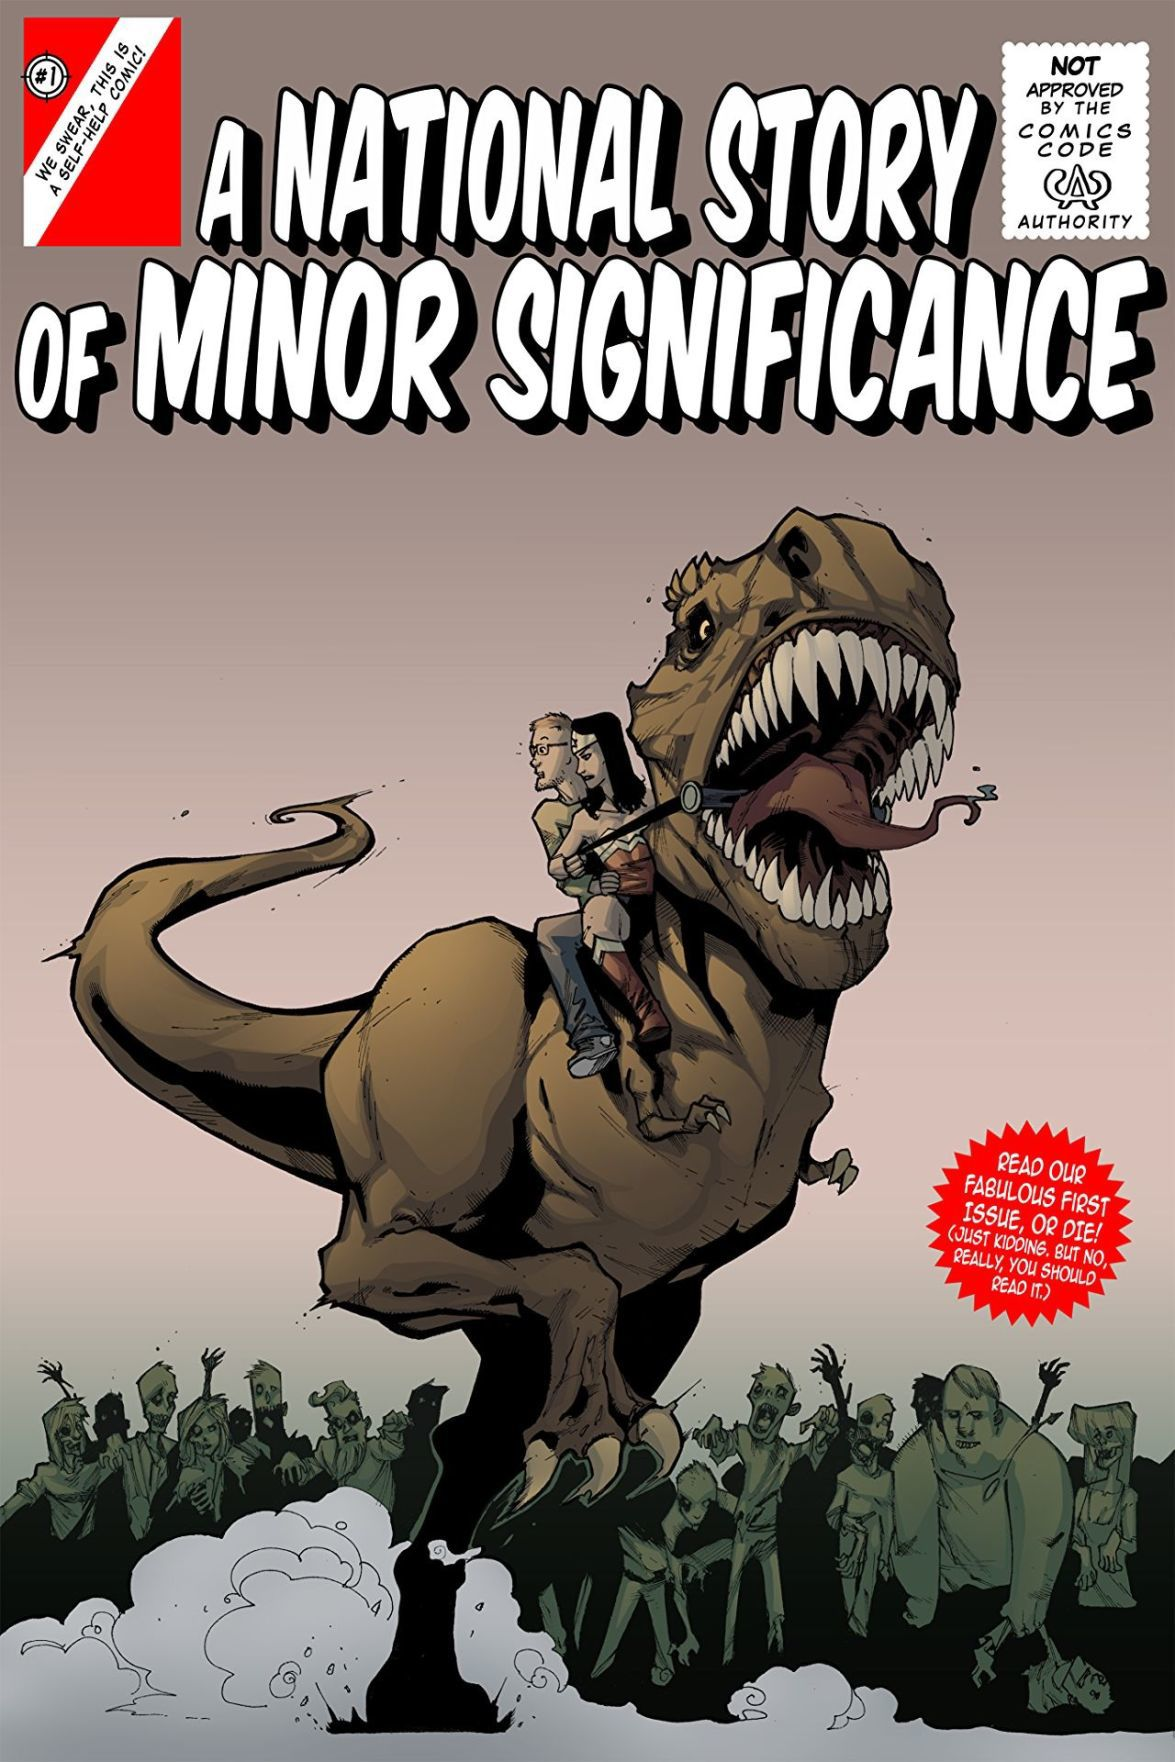 'A National Story of Minor Significance'